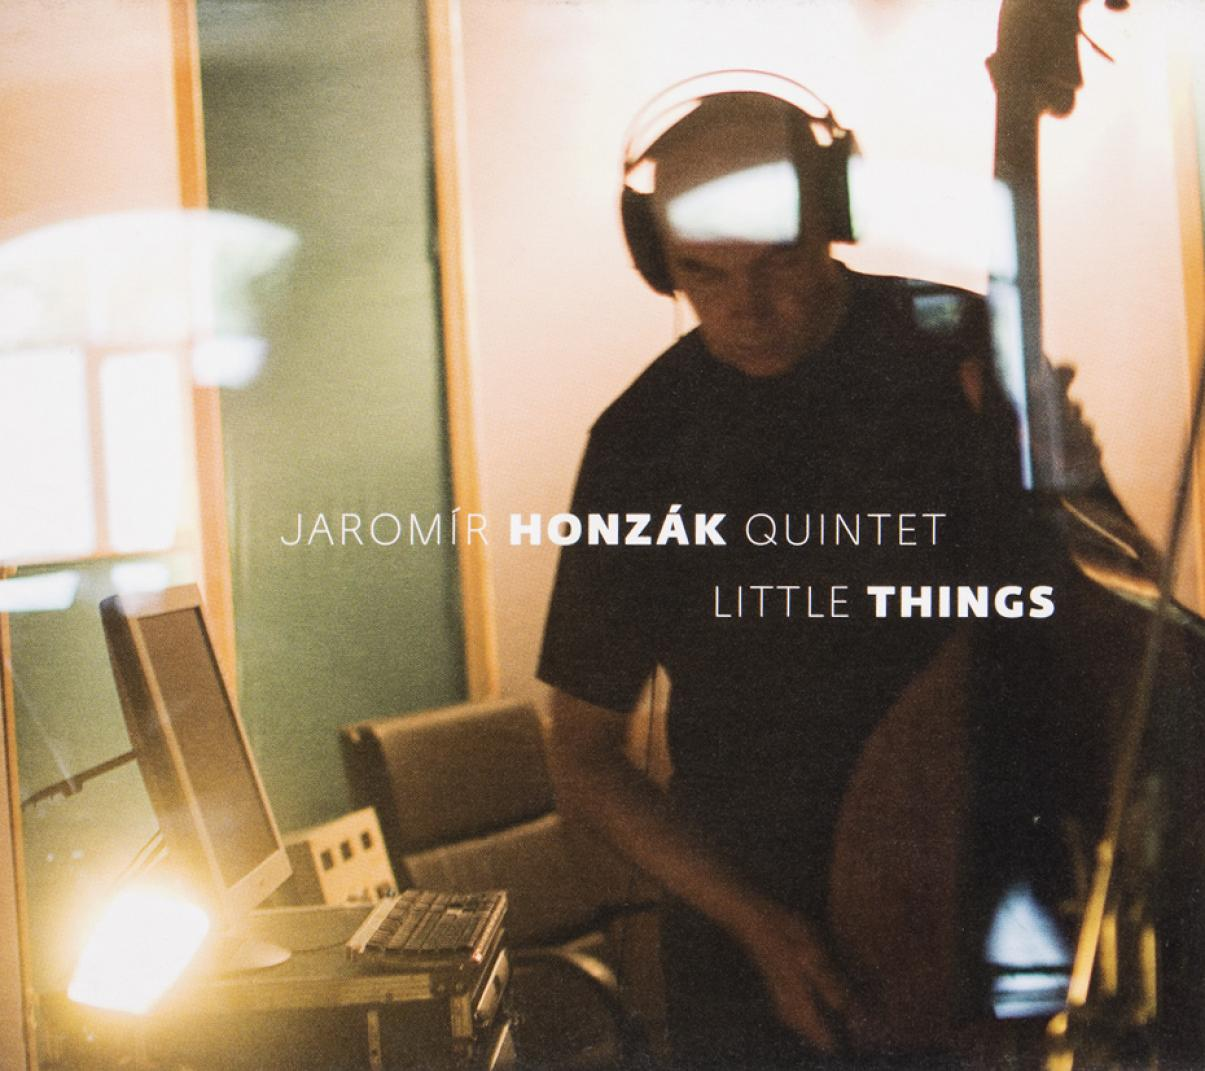 Jaromír Honzák Quintet: Little Things